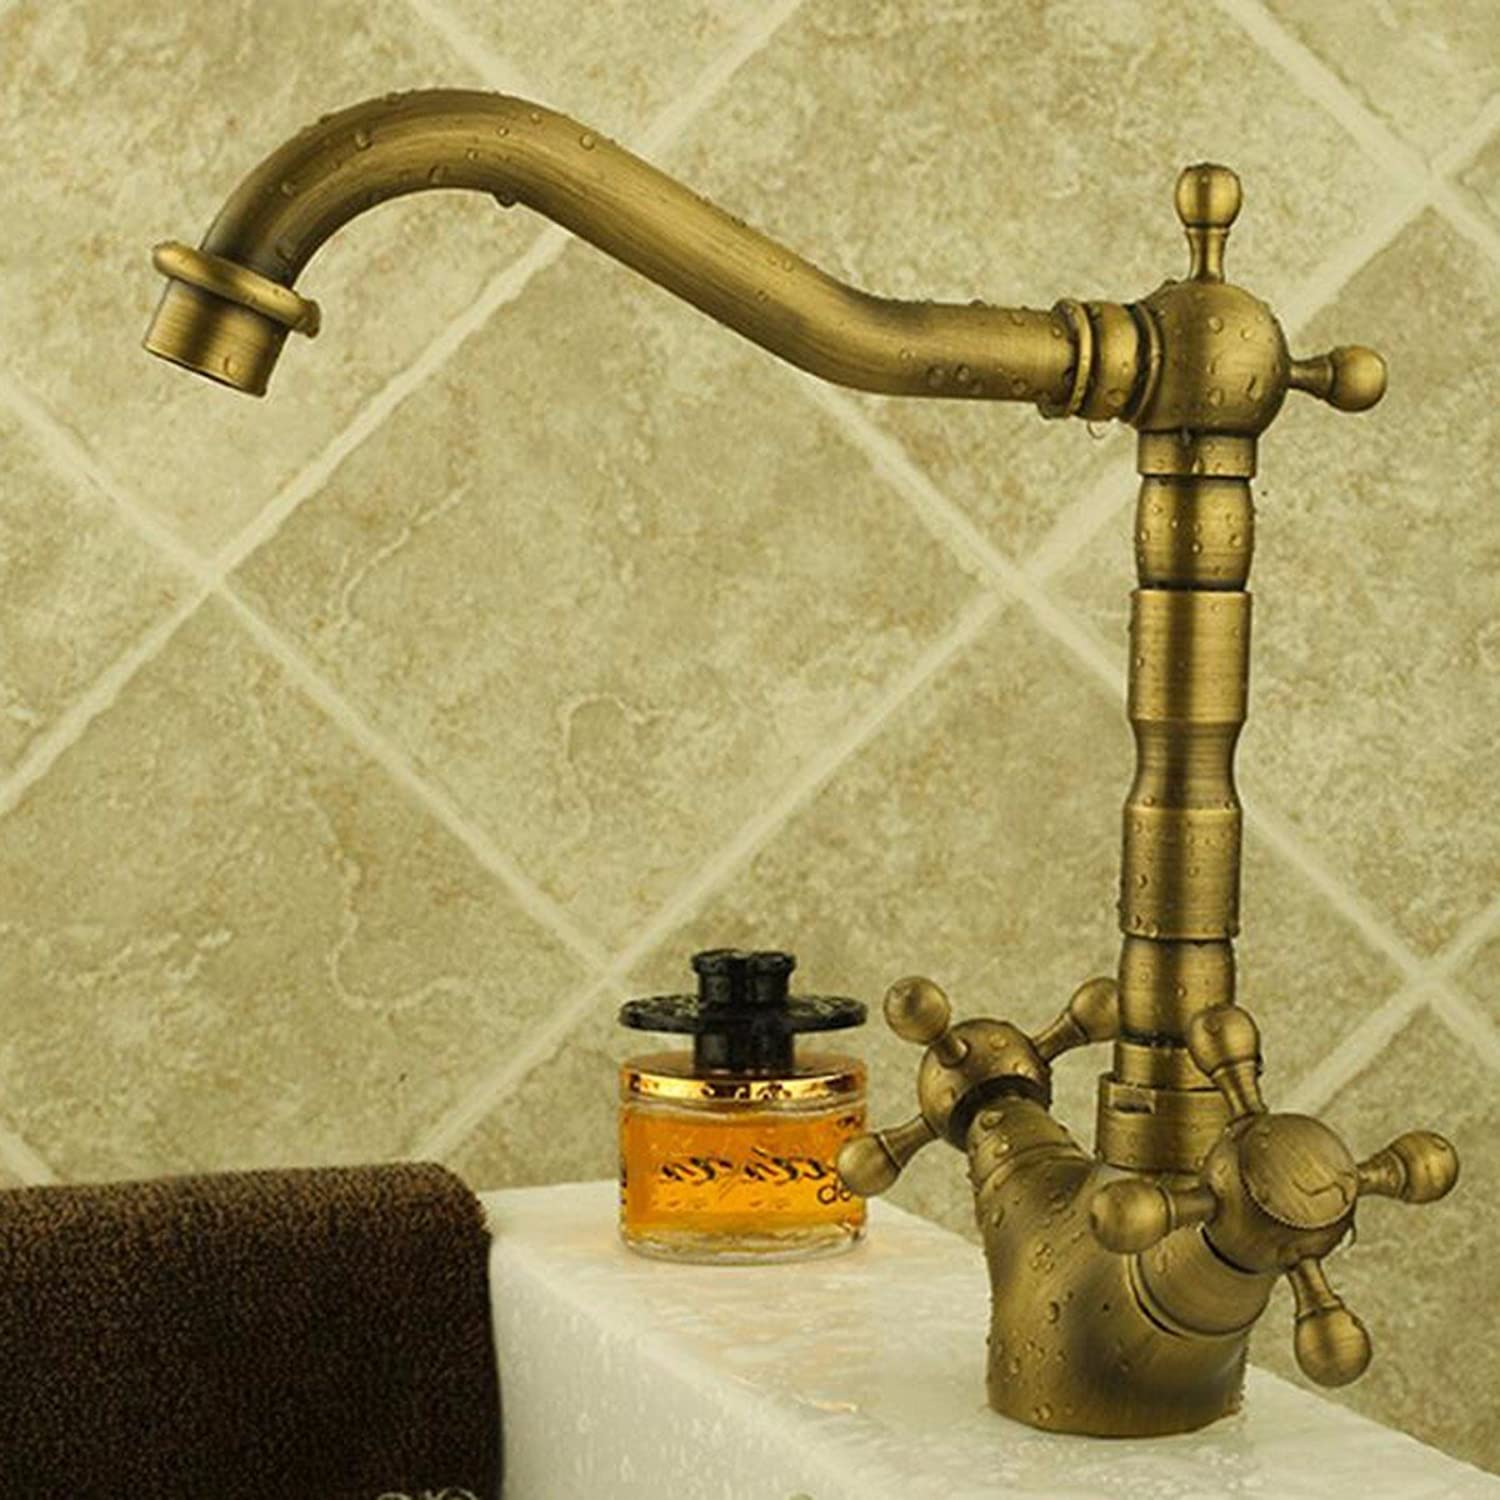 Faucet European Style Antique Antiquate Basin Hot Water Faucet